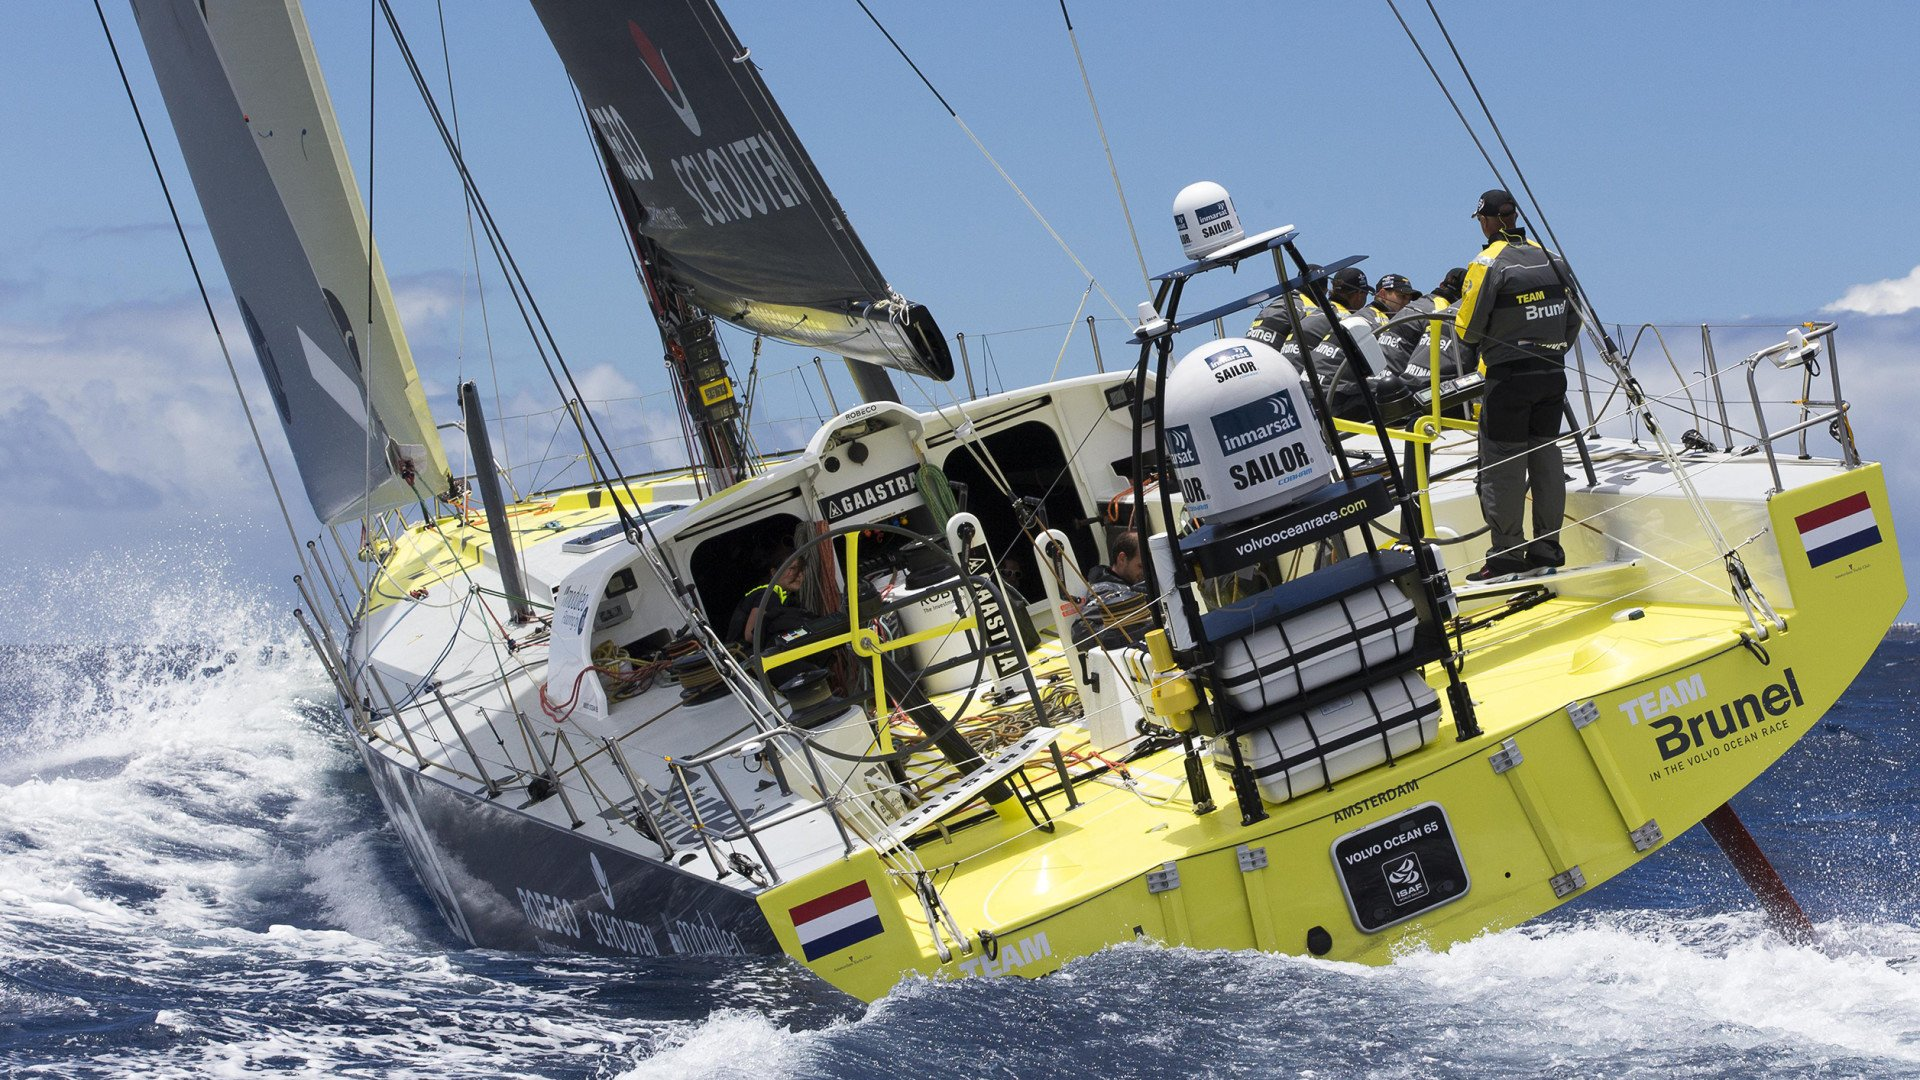 Volvo Ocean Race 2014-2015 Team Brunel Bolidt